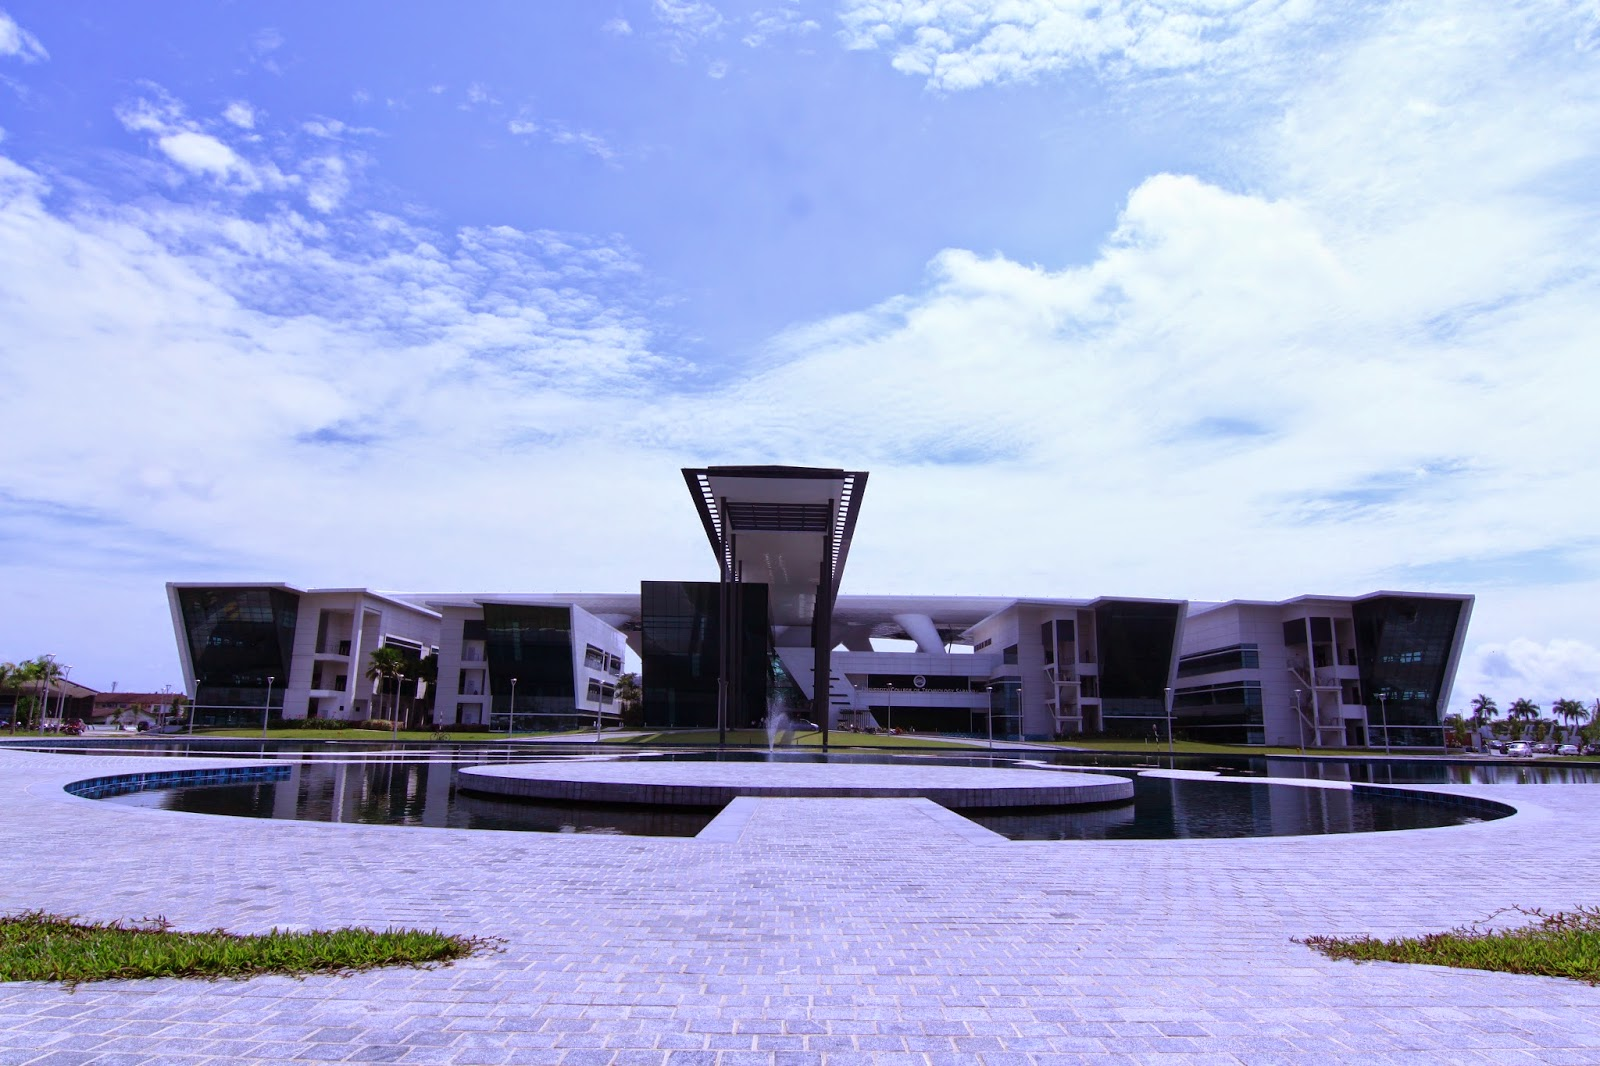 University College of Technology Sarawak UCTS